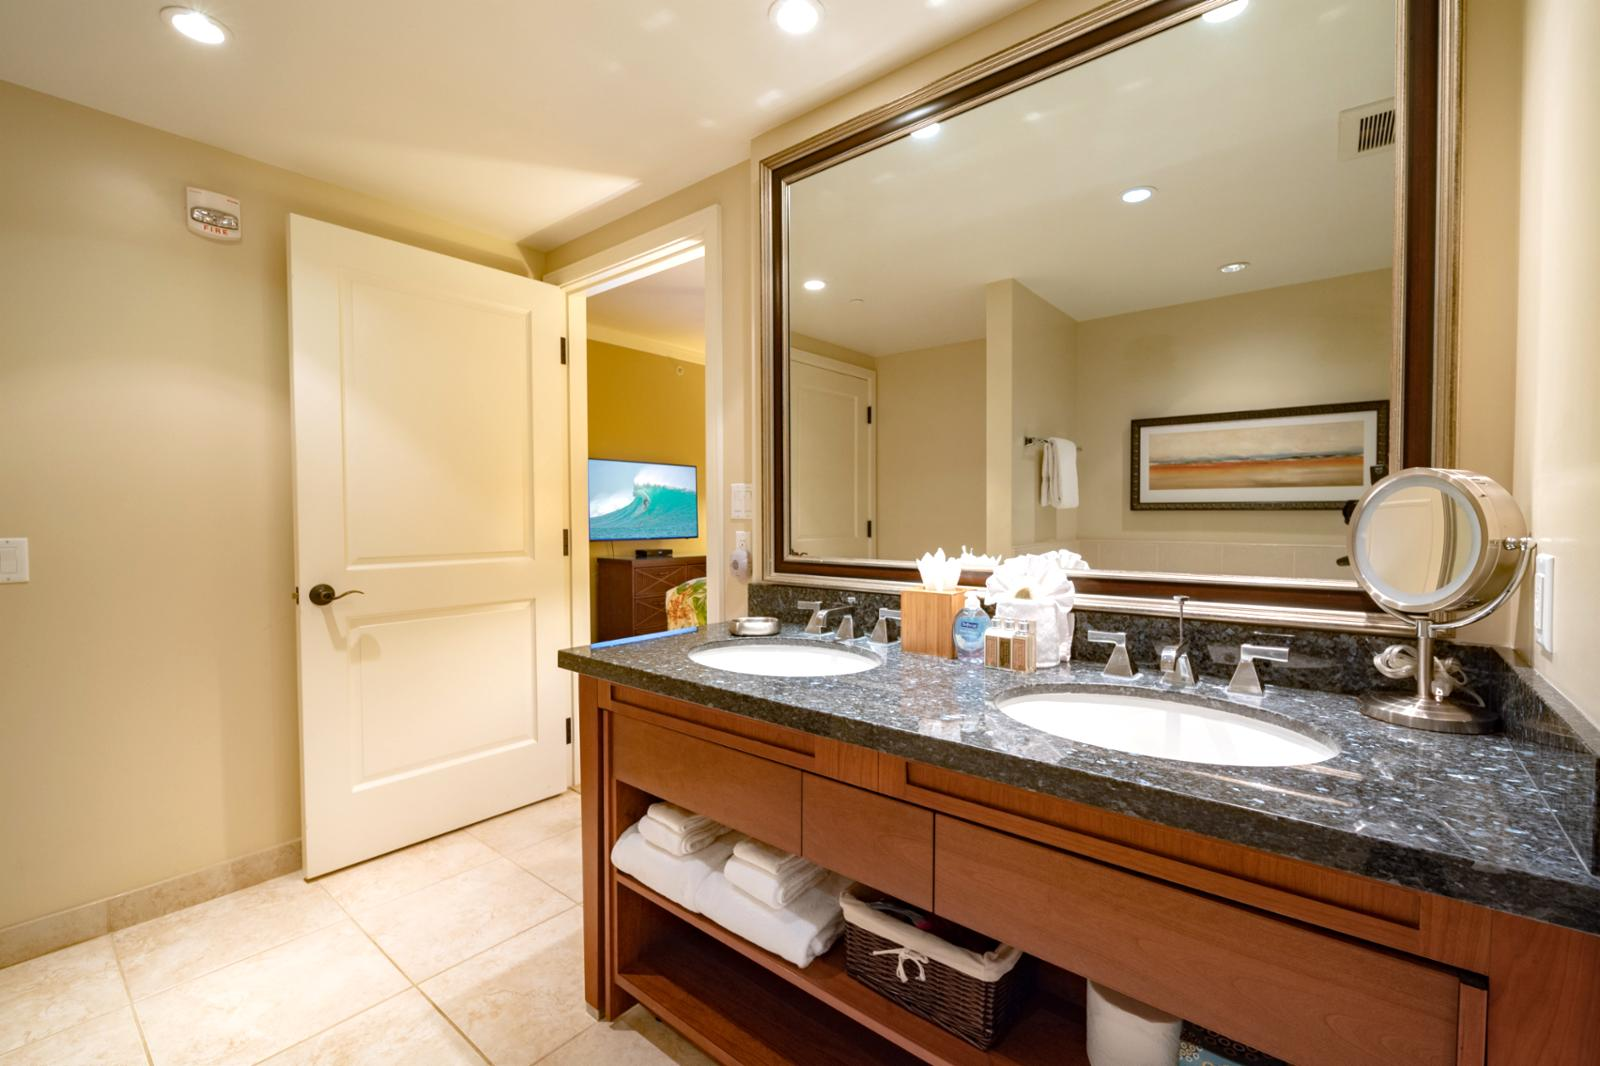 Large master bathroom layout with private access from master bedroom